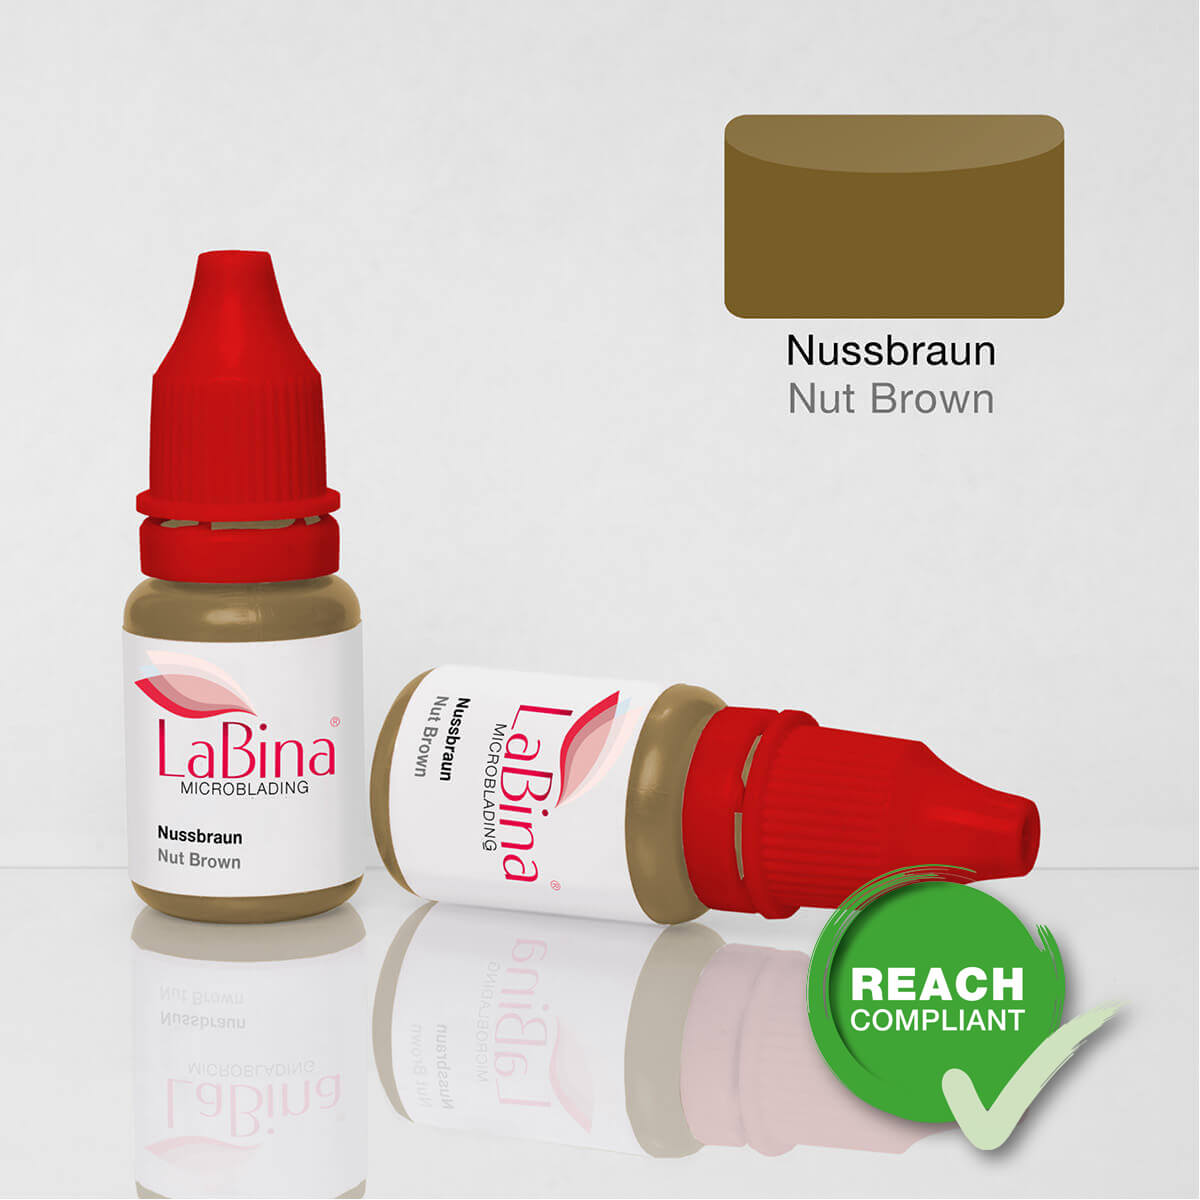 Farbe Nut Nussbraun Microblading Farbe Nut Brown Pigment Ink Mb